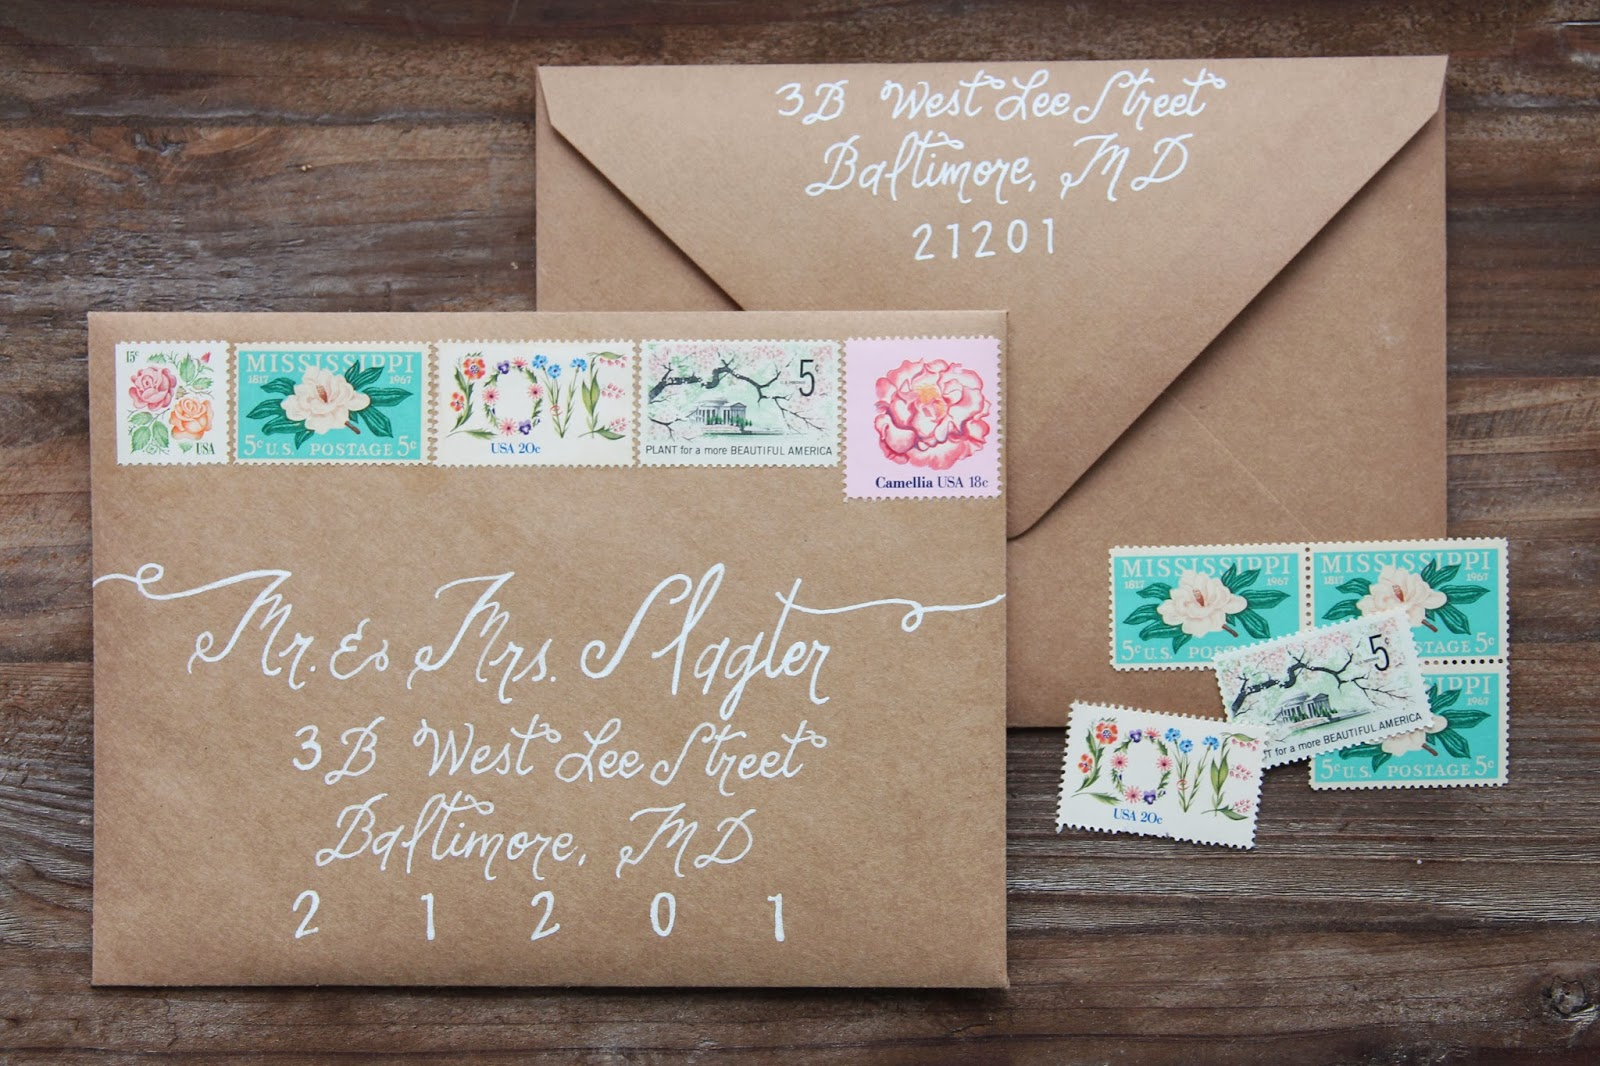 wedding invitations vintage stamps wedding stamps for more than just weddings Can you imagine how gorgeous your holiday cards could be Check out some awesome calligraphy and stamp resources below